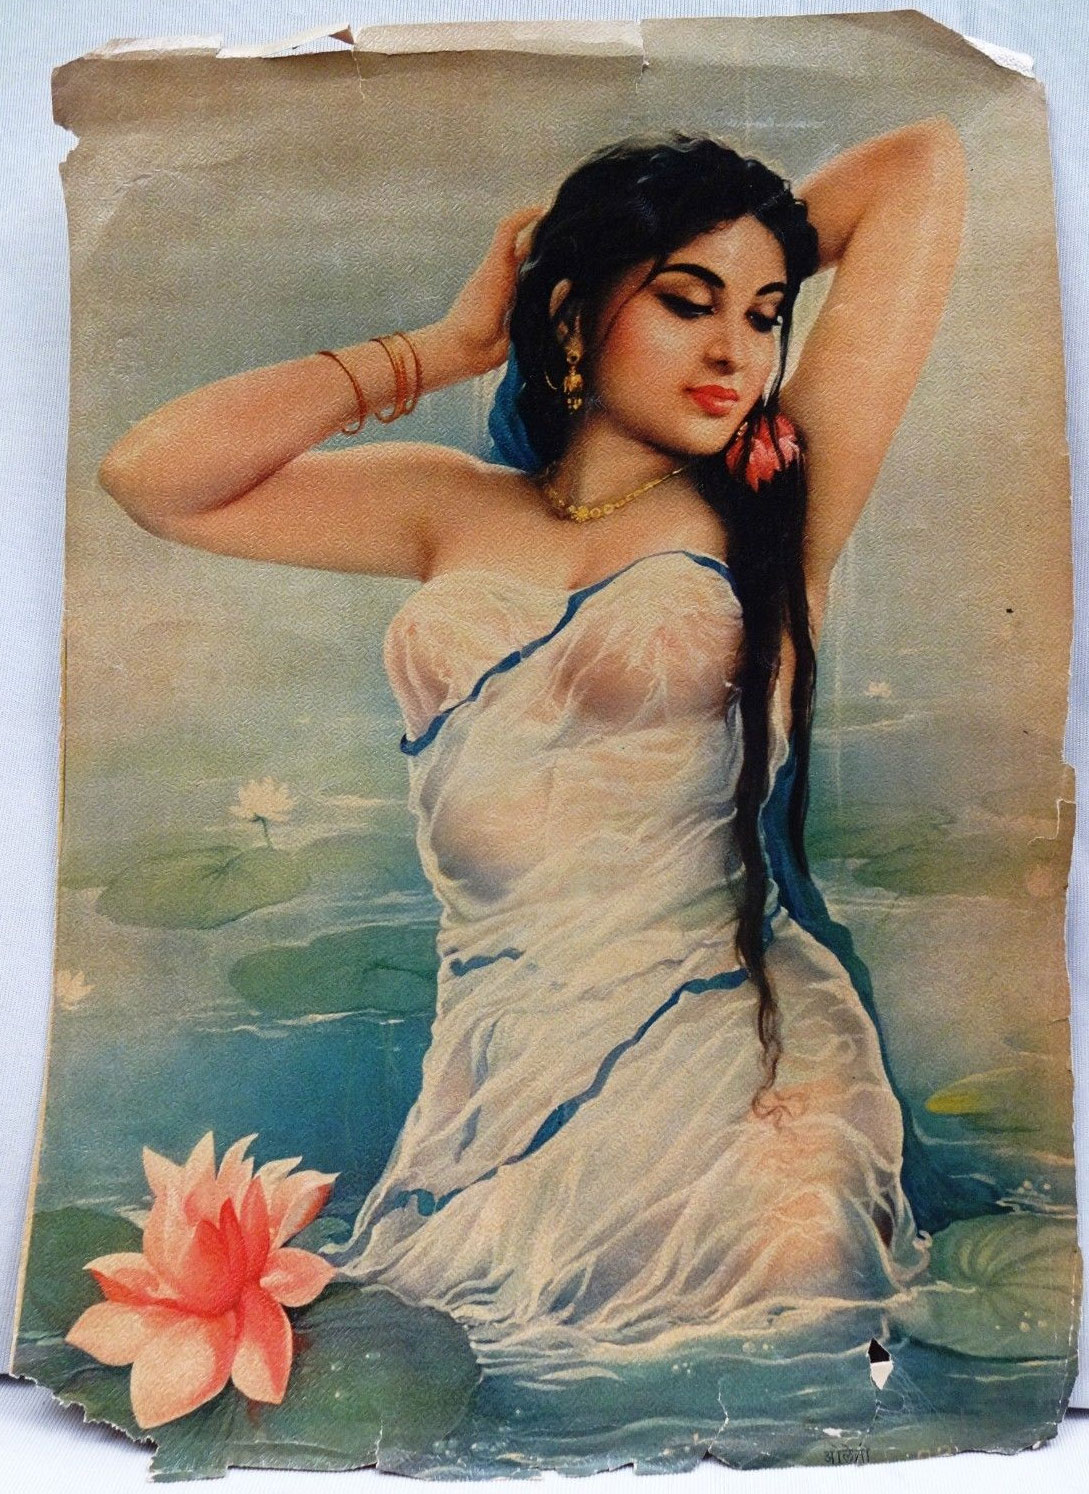 Indian Lady Taking Bath - Vintage Indian Lithograph Print